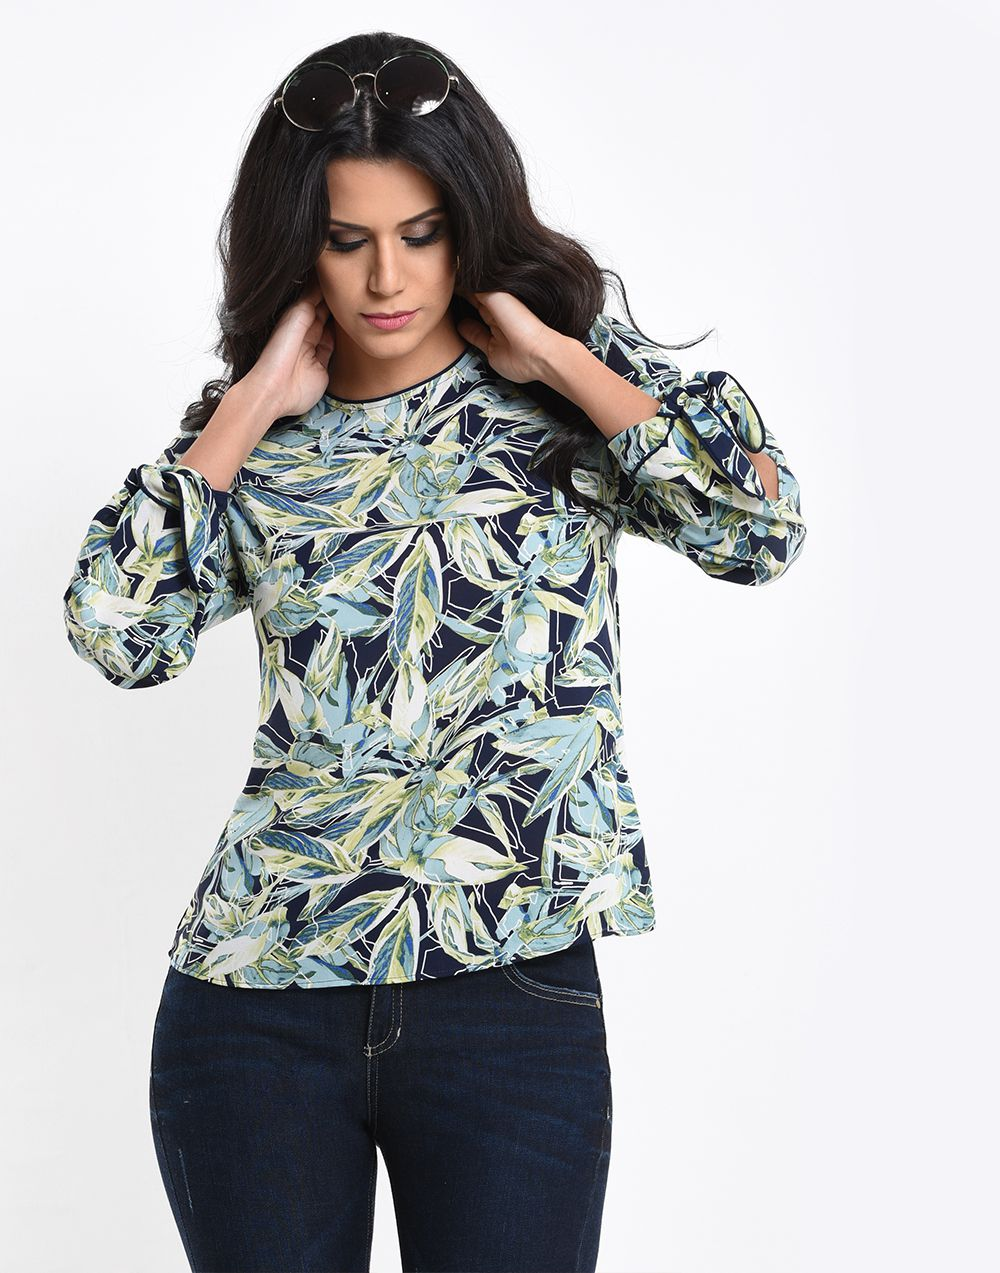 Botanical Summer Top